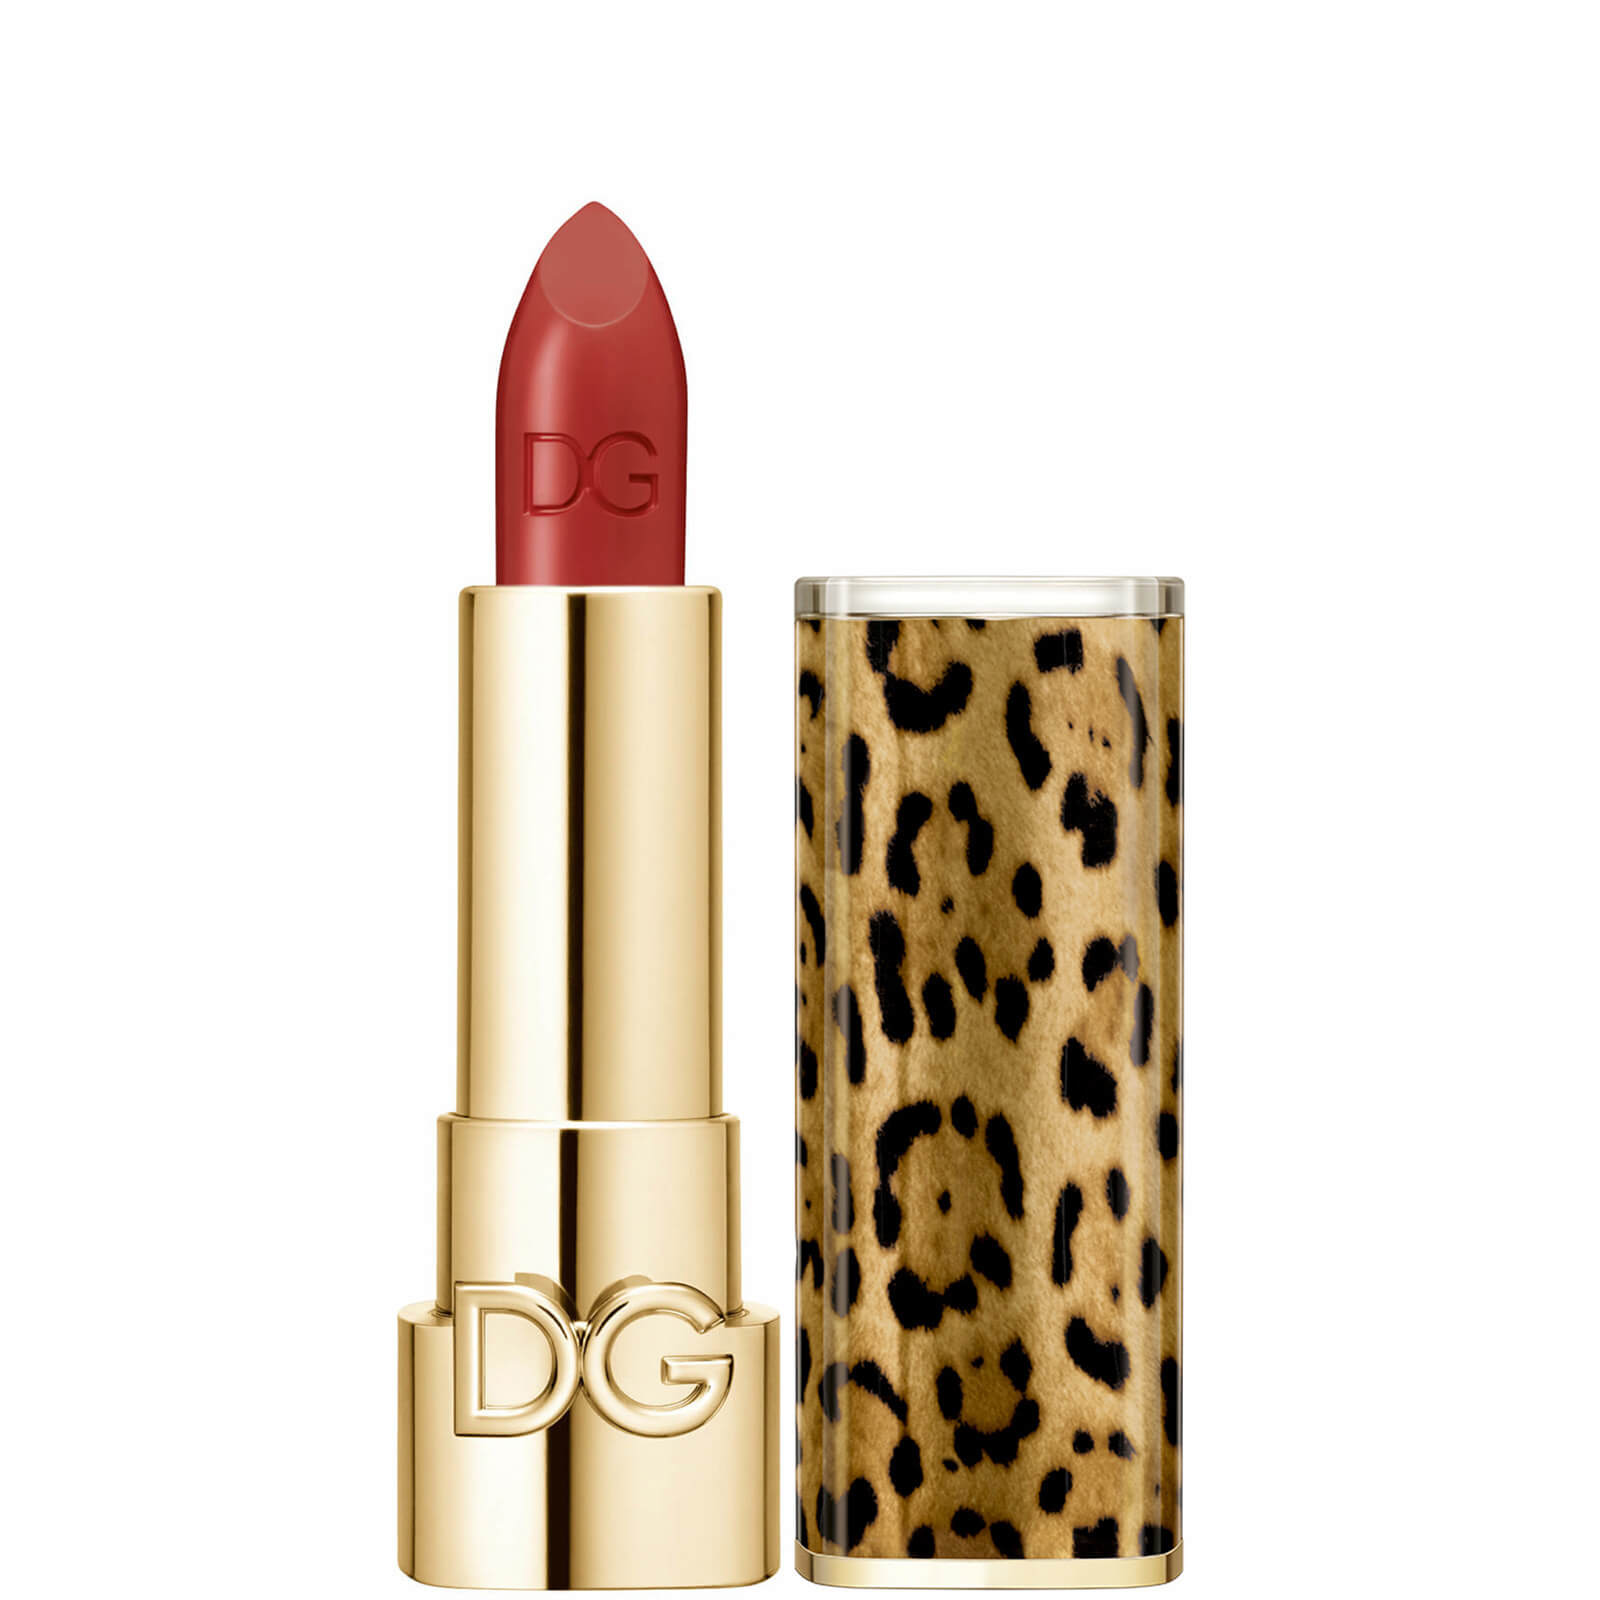 Dolce&Gabbana The Only One Lipstick + Cap (Animalier) (Various Shades) - 670 Spicy Touch